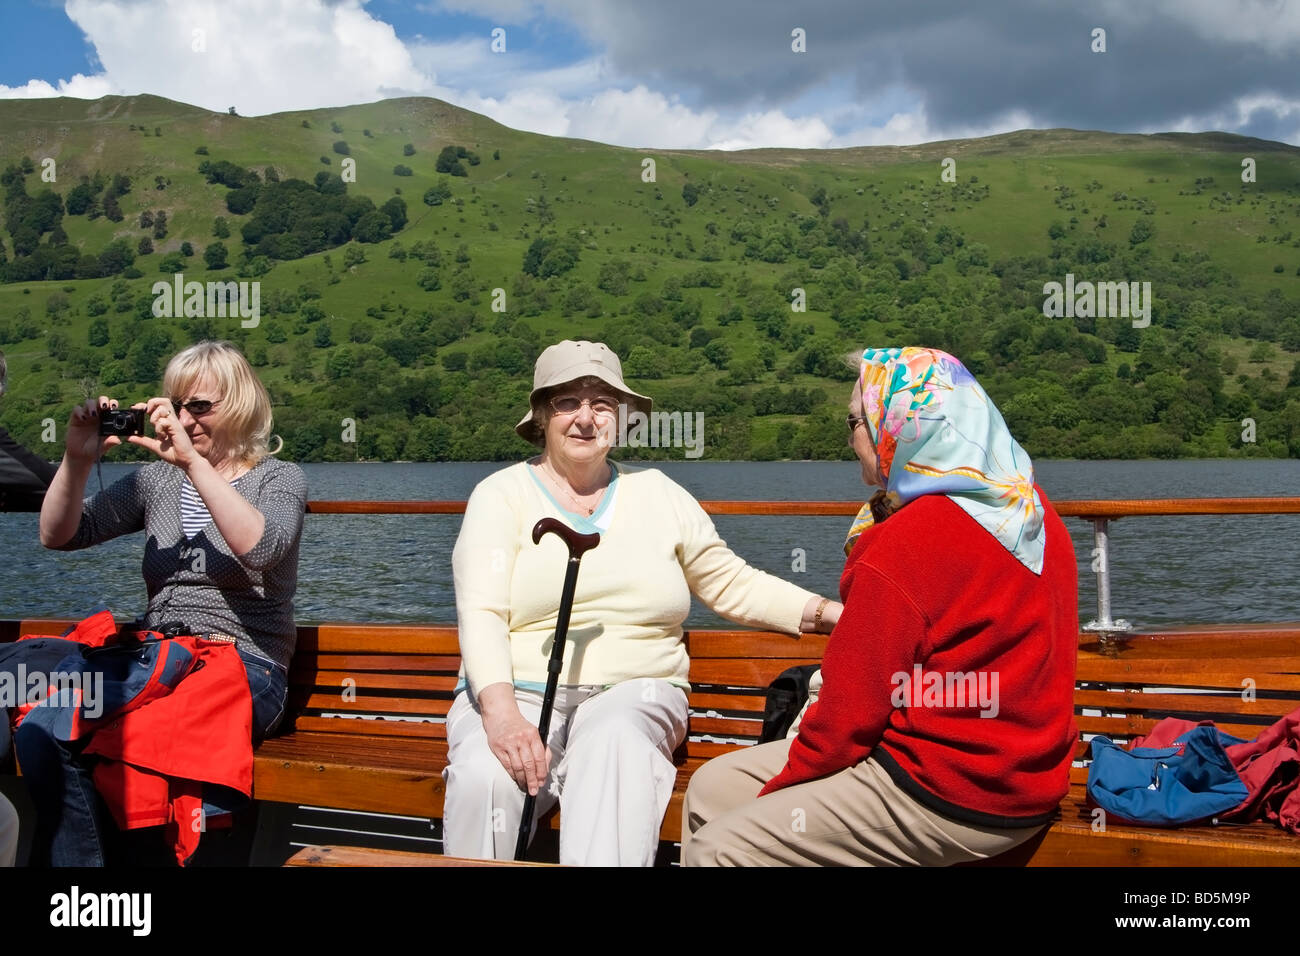 Passengers on a ferry on Ullswater, the Lake District, Cumbria, UK. Stock Photo